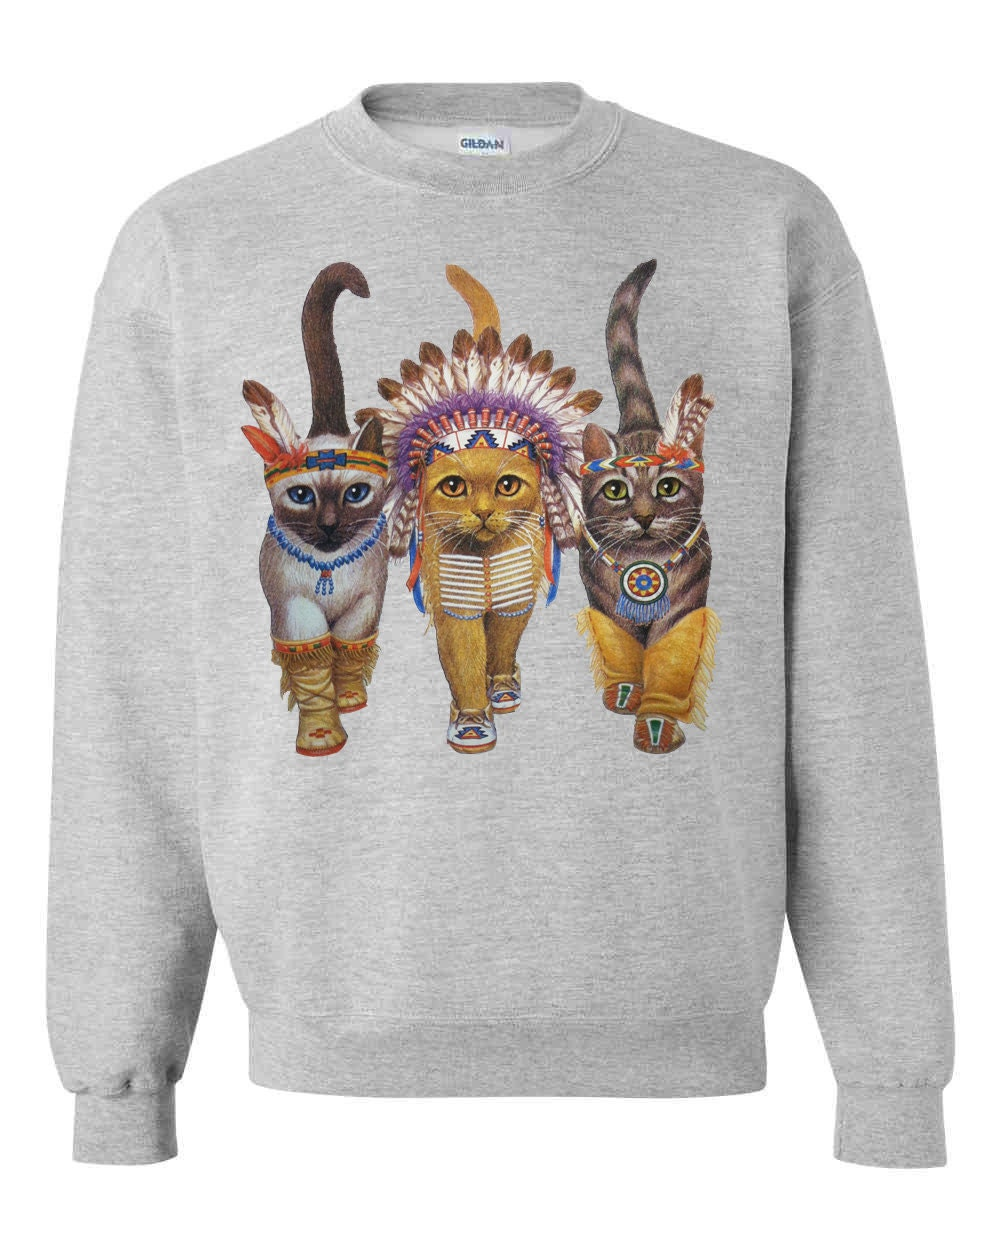 Find great deals on eBay for cat sweatshirt. Shop with confidence.